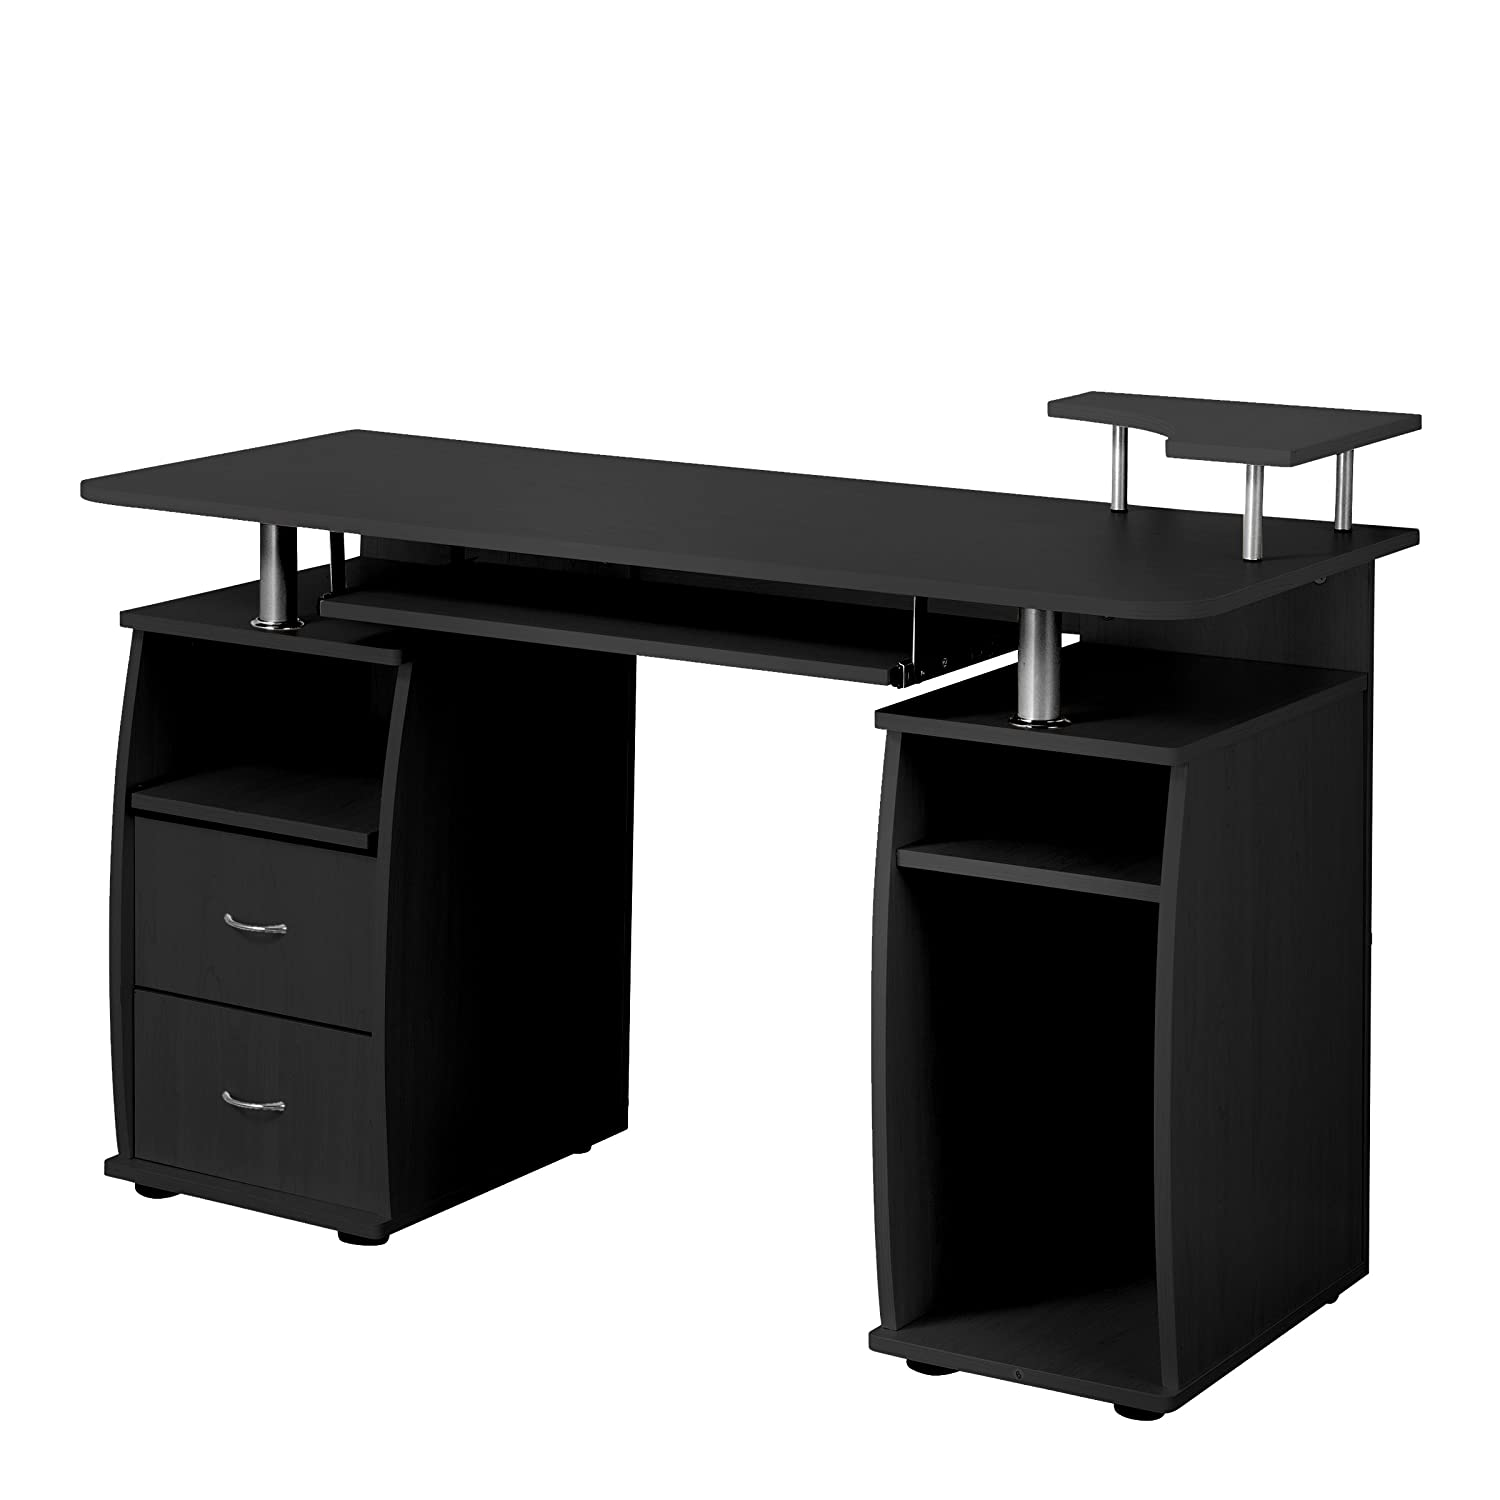 Delicieux Amazon.com : Fineboard Home Office Computer Desk With Raised Side Desktop,  Black : Office Products